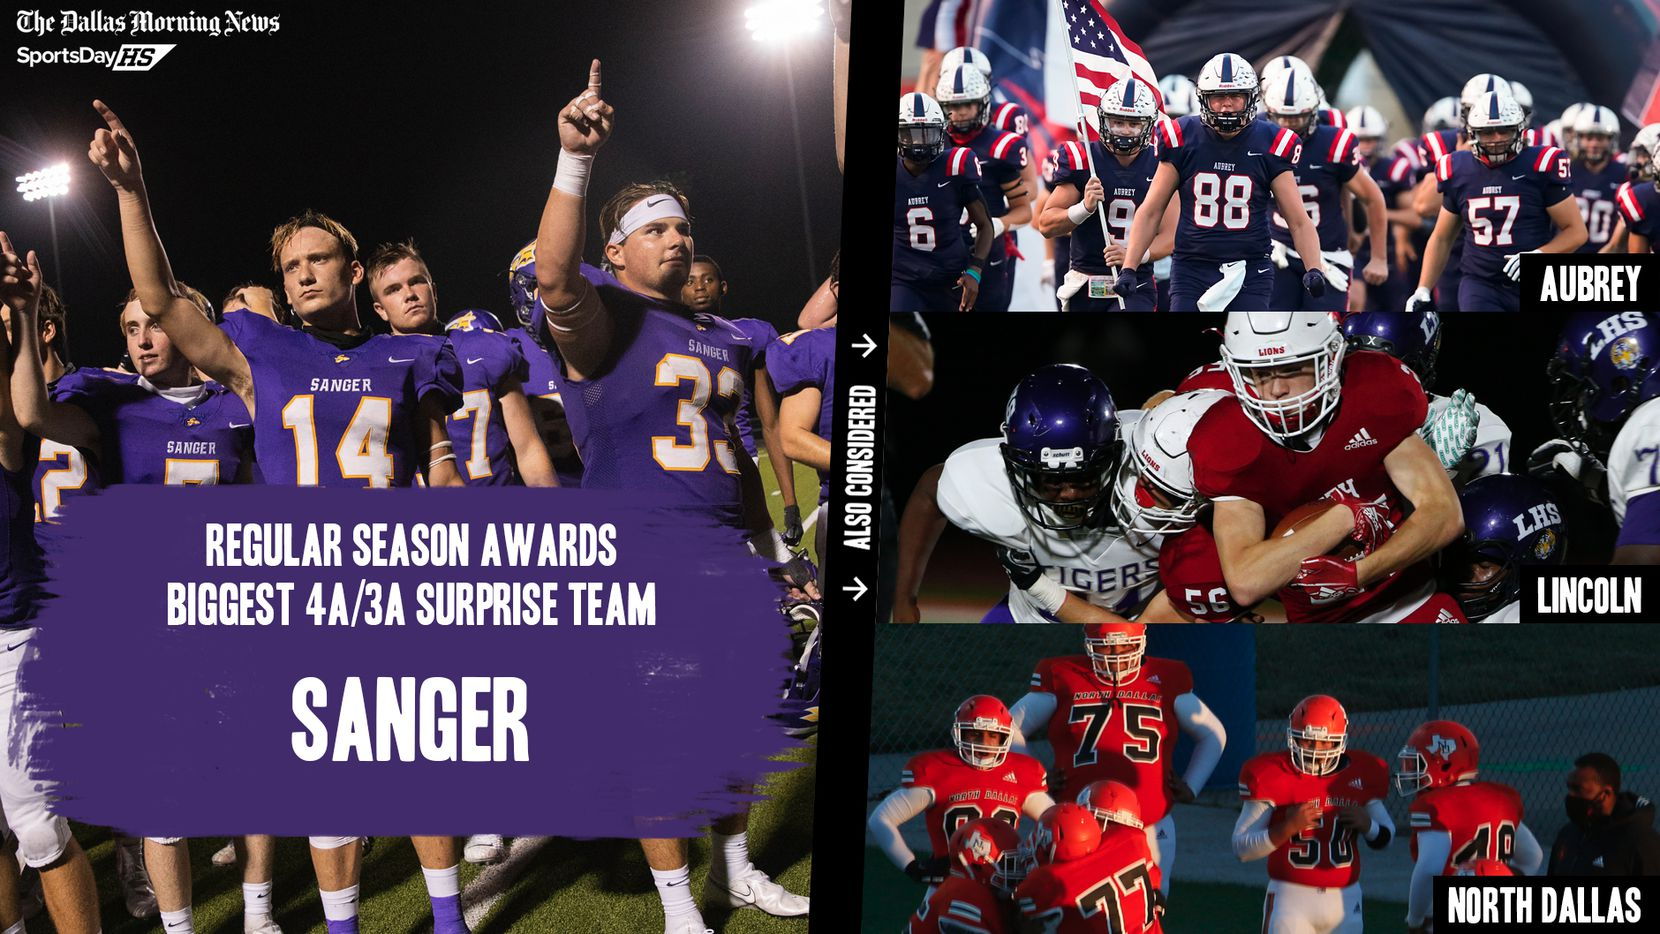 The Dallas Morning News' midseason awards for the 2020 football season: the biggest 4A and 3A surprise teams.